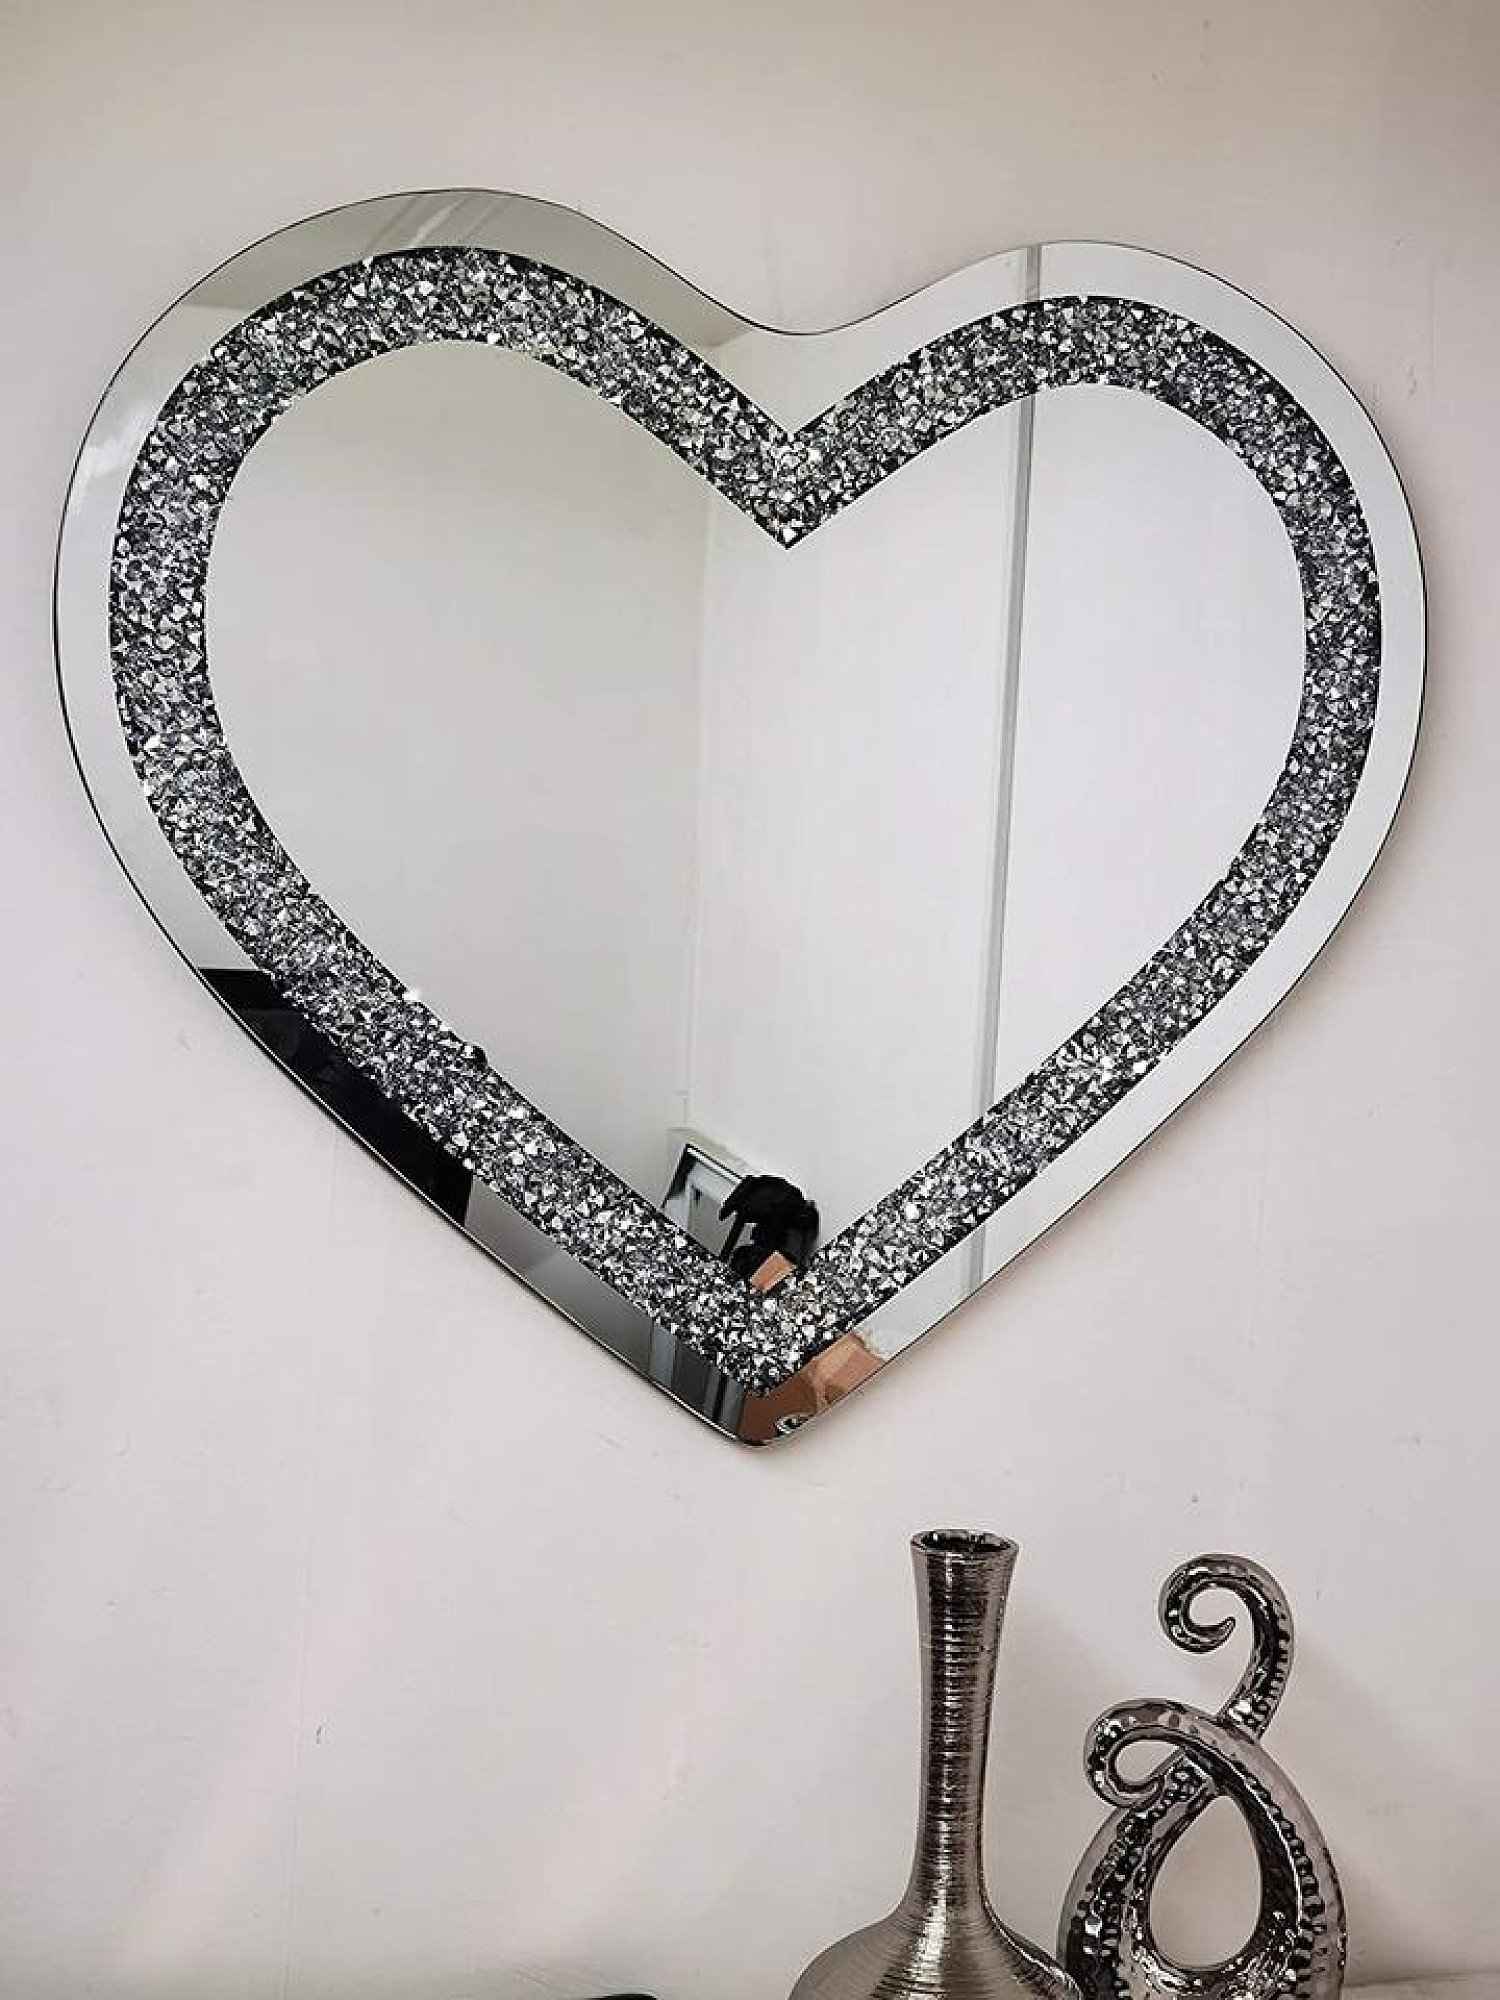 Heart Shape 70x80cm Crushed Diamond Crystal Glass Bevelled Wall Mirror Free Postage